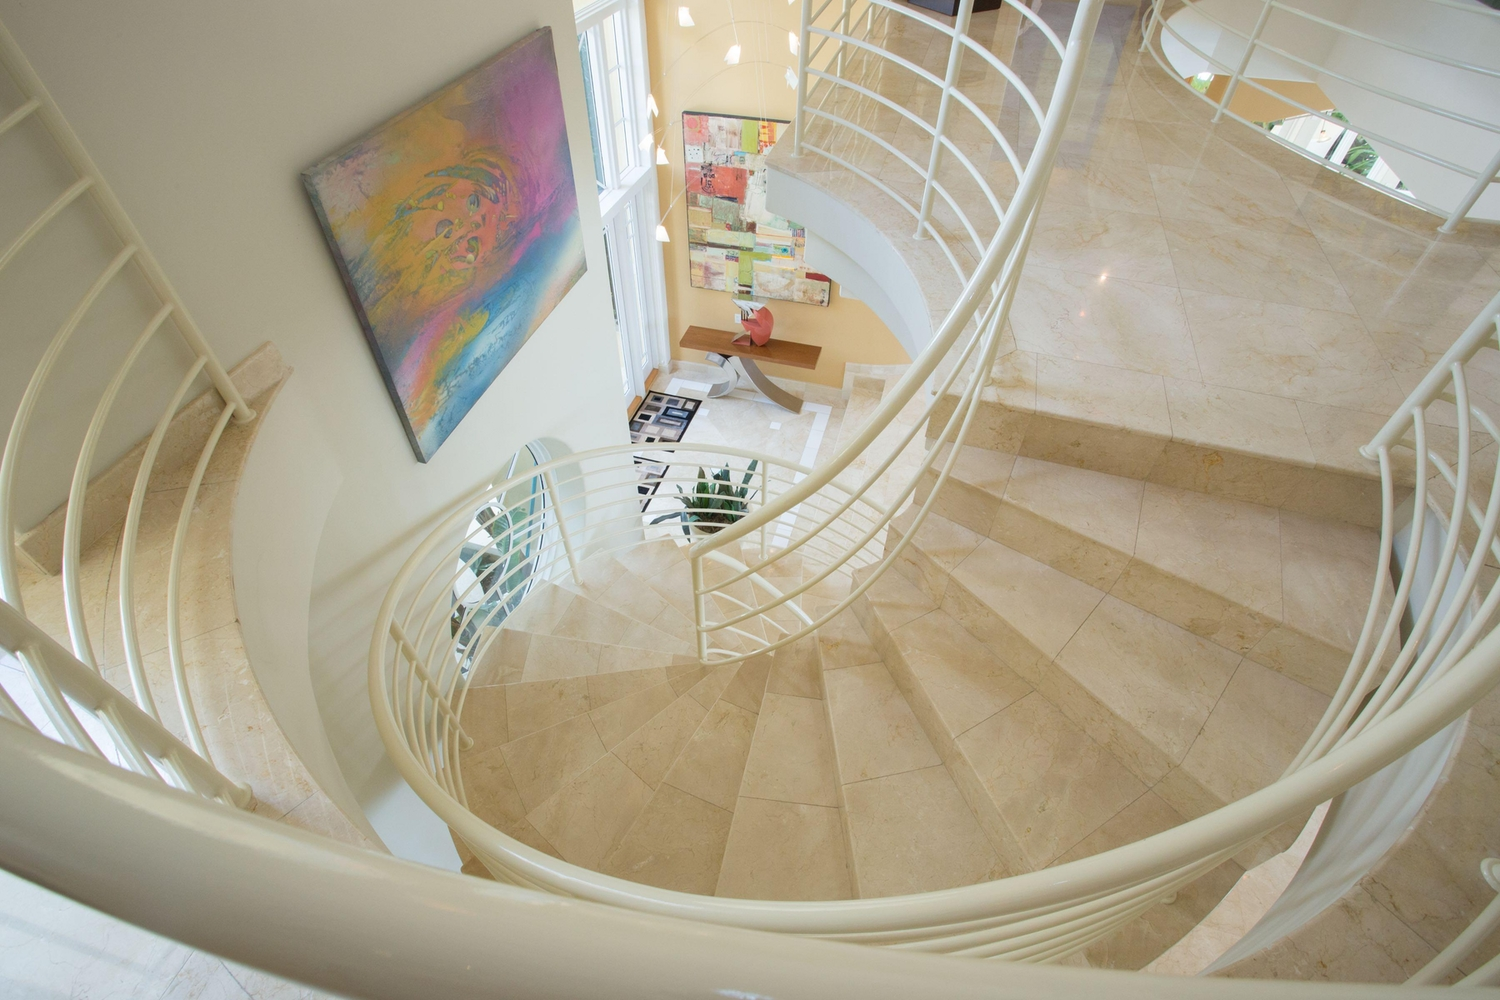 Aerial view of a spiral staircaise with a tiled floor